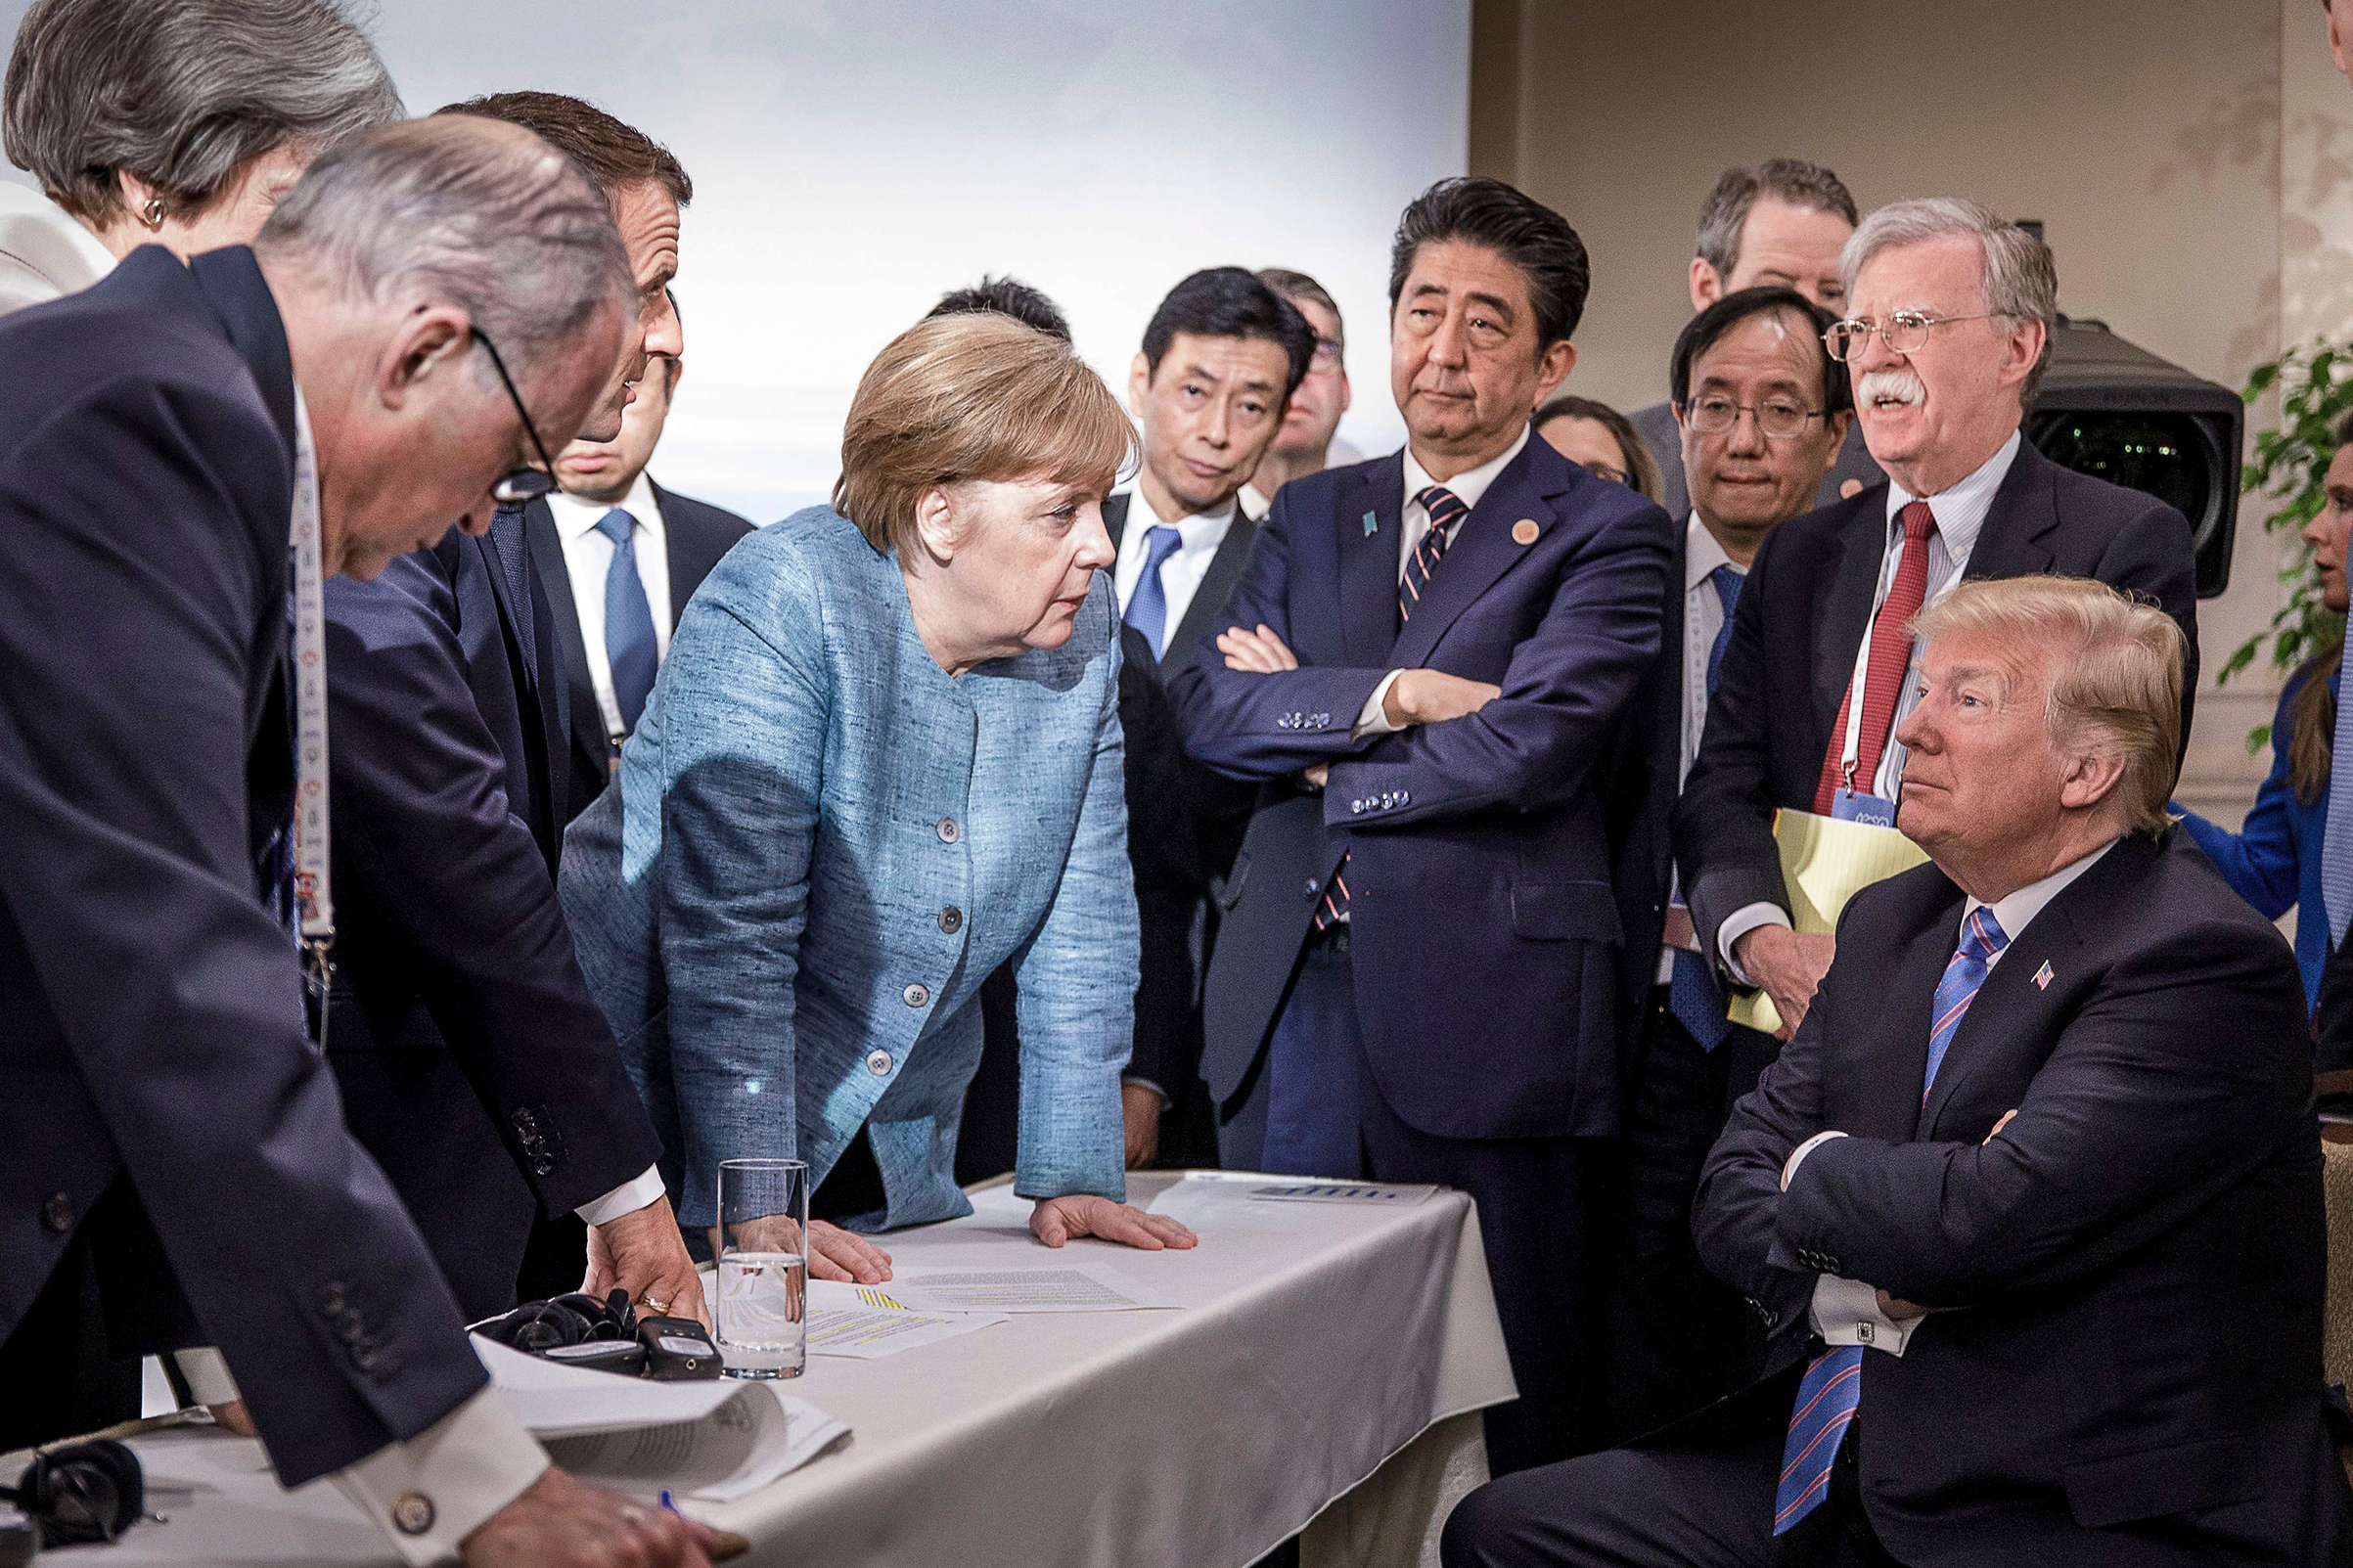 G-7 Summit: Angela Merkel and Donald Trump in Viral Photo | Time